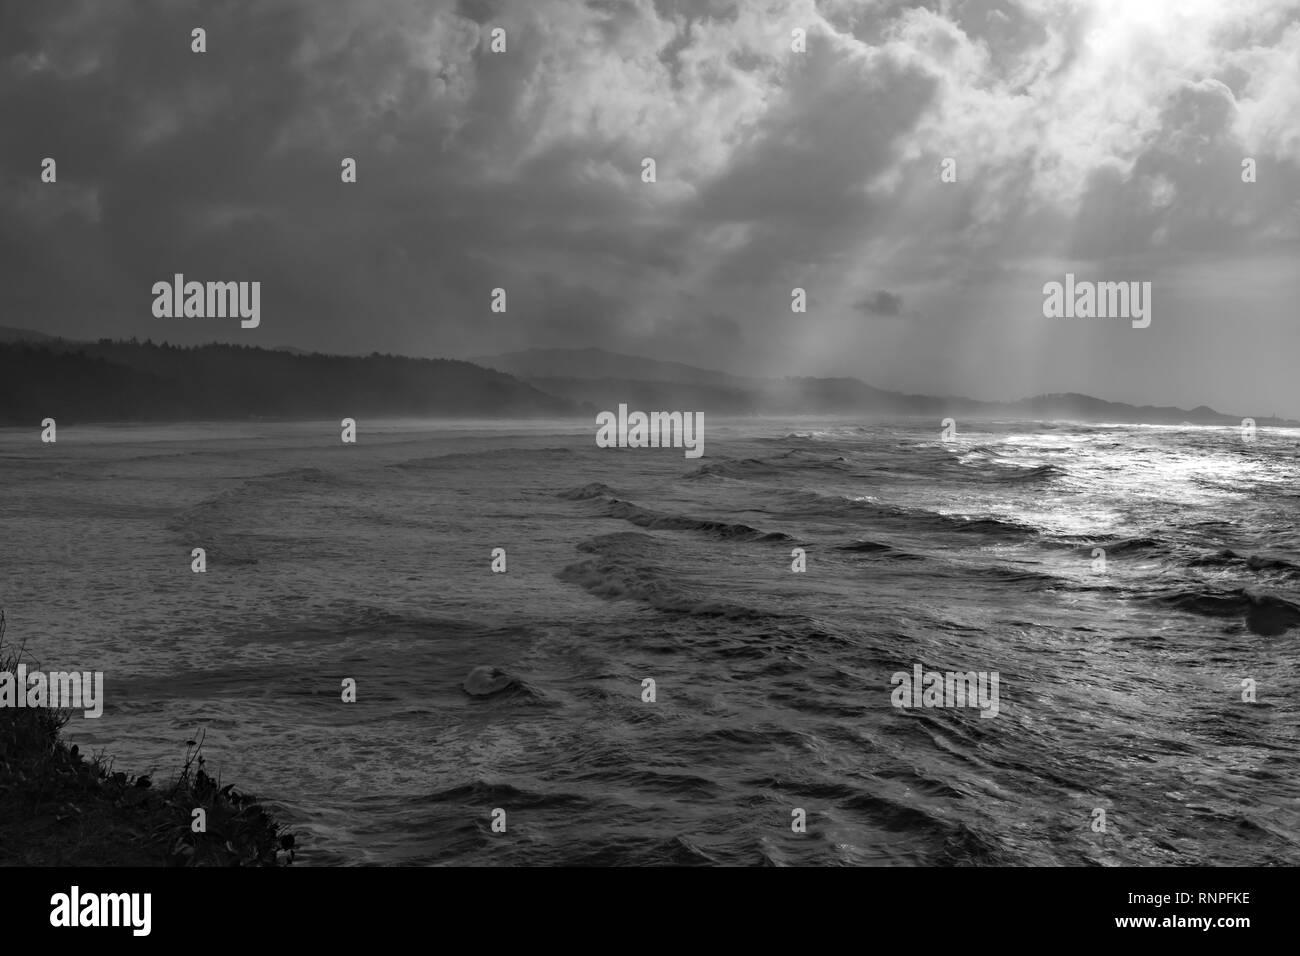 The dramatic and rugged Orgeon coastline, shot in black and white to add drama, shafts of light coming through the breaks in the clouds - Stock Image